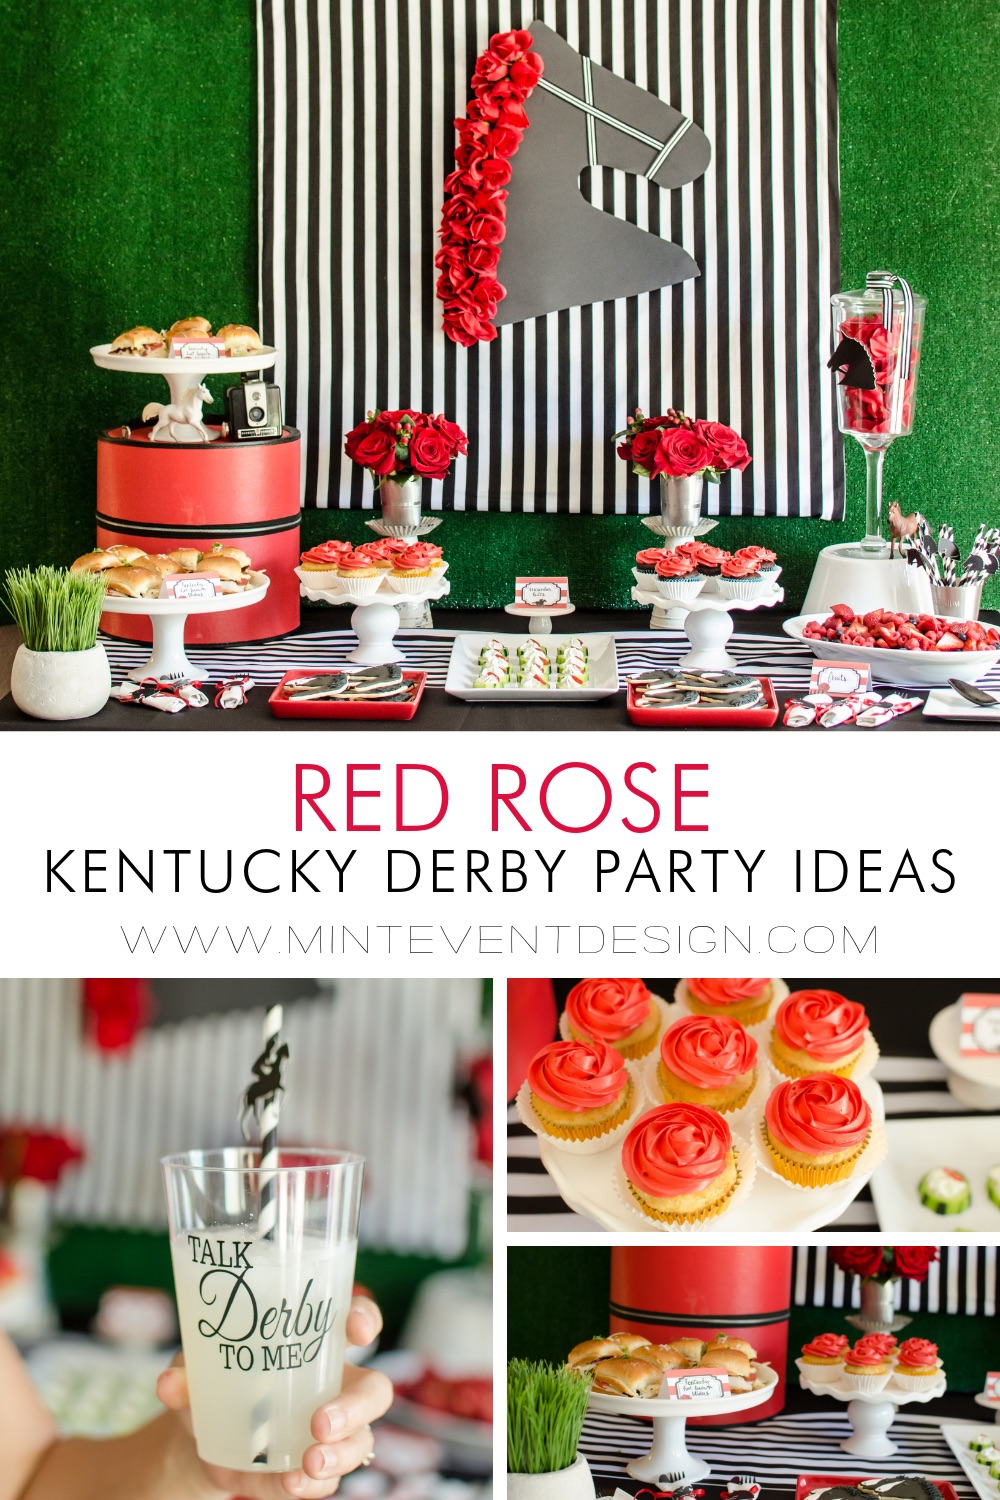 "Red Rose Kentucky Derby Party Ideas including layouts for a food table and drink station with ""Talk Derby to Me"" Decals for your glasses. Styling by Mint Event Design in Austin Texas www.minteventdesign.com #kentuckyderbyparty #kentuckyderby #partyideas #derbyday #runfortheroses #tabledecor"